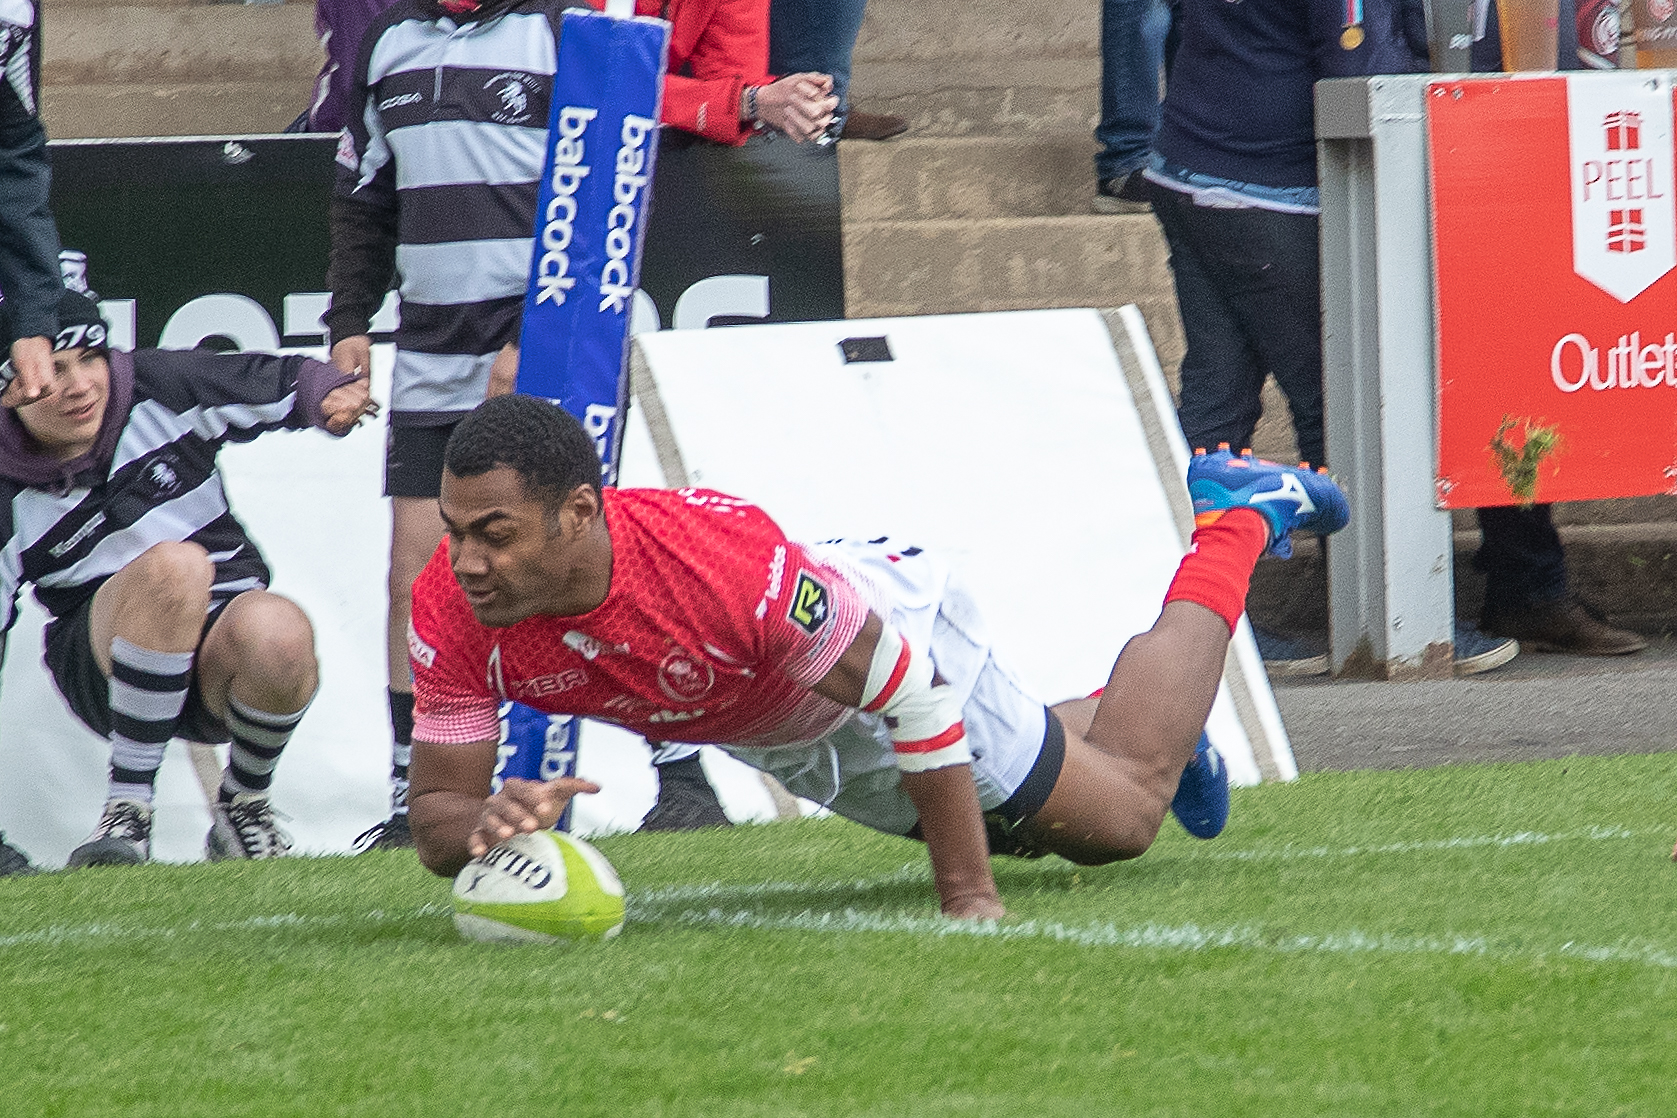 Pte Ratu 'Siva' Naulago, 1 YORKS, signs for Bristol Bears